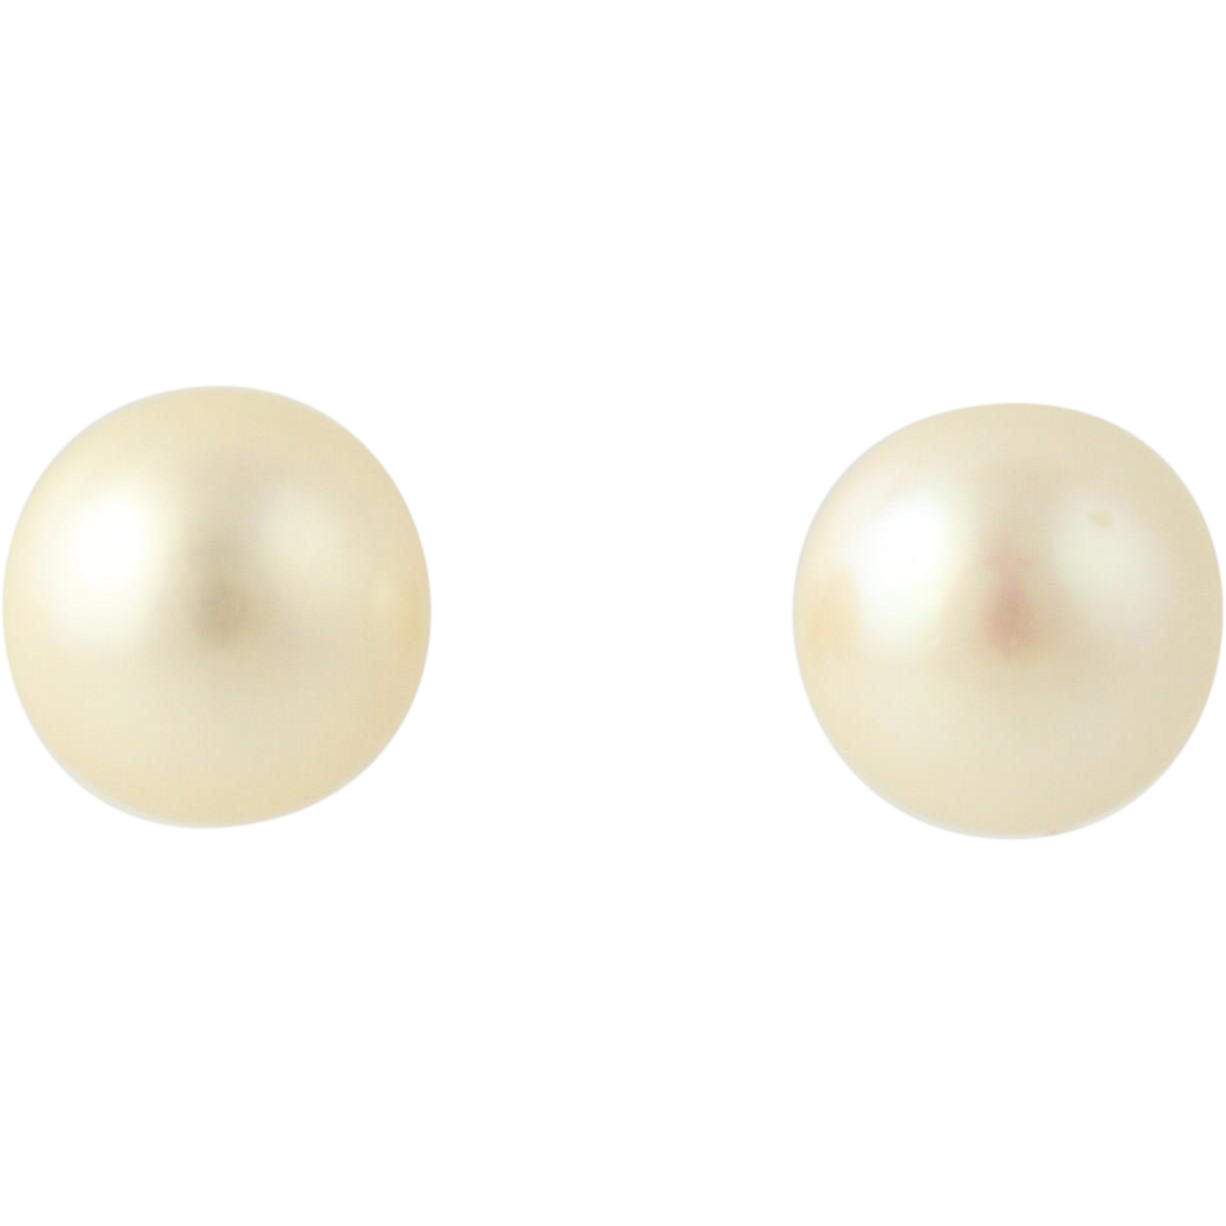 7.5mm Cultured Akoya Pear Stud Earrings - 14k Yellow Gold Classic